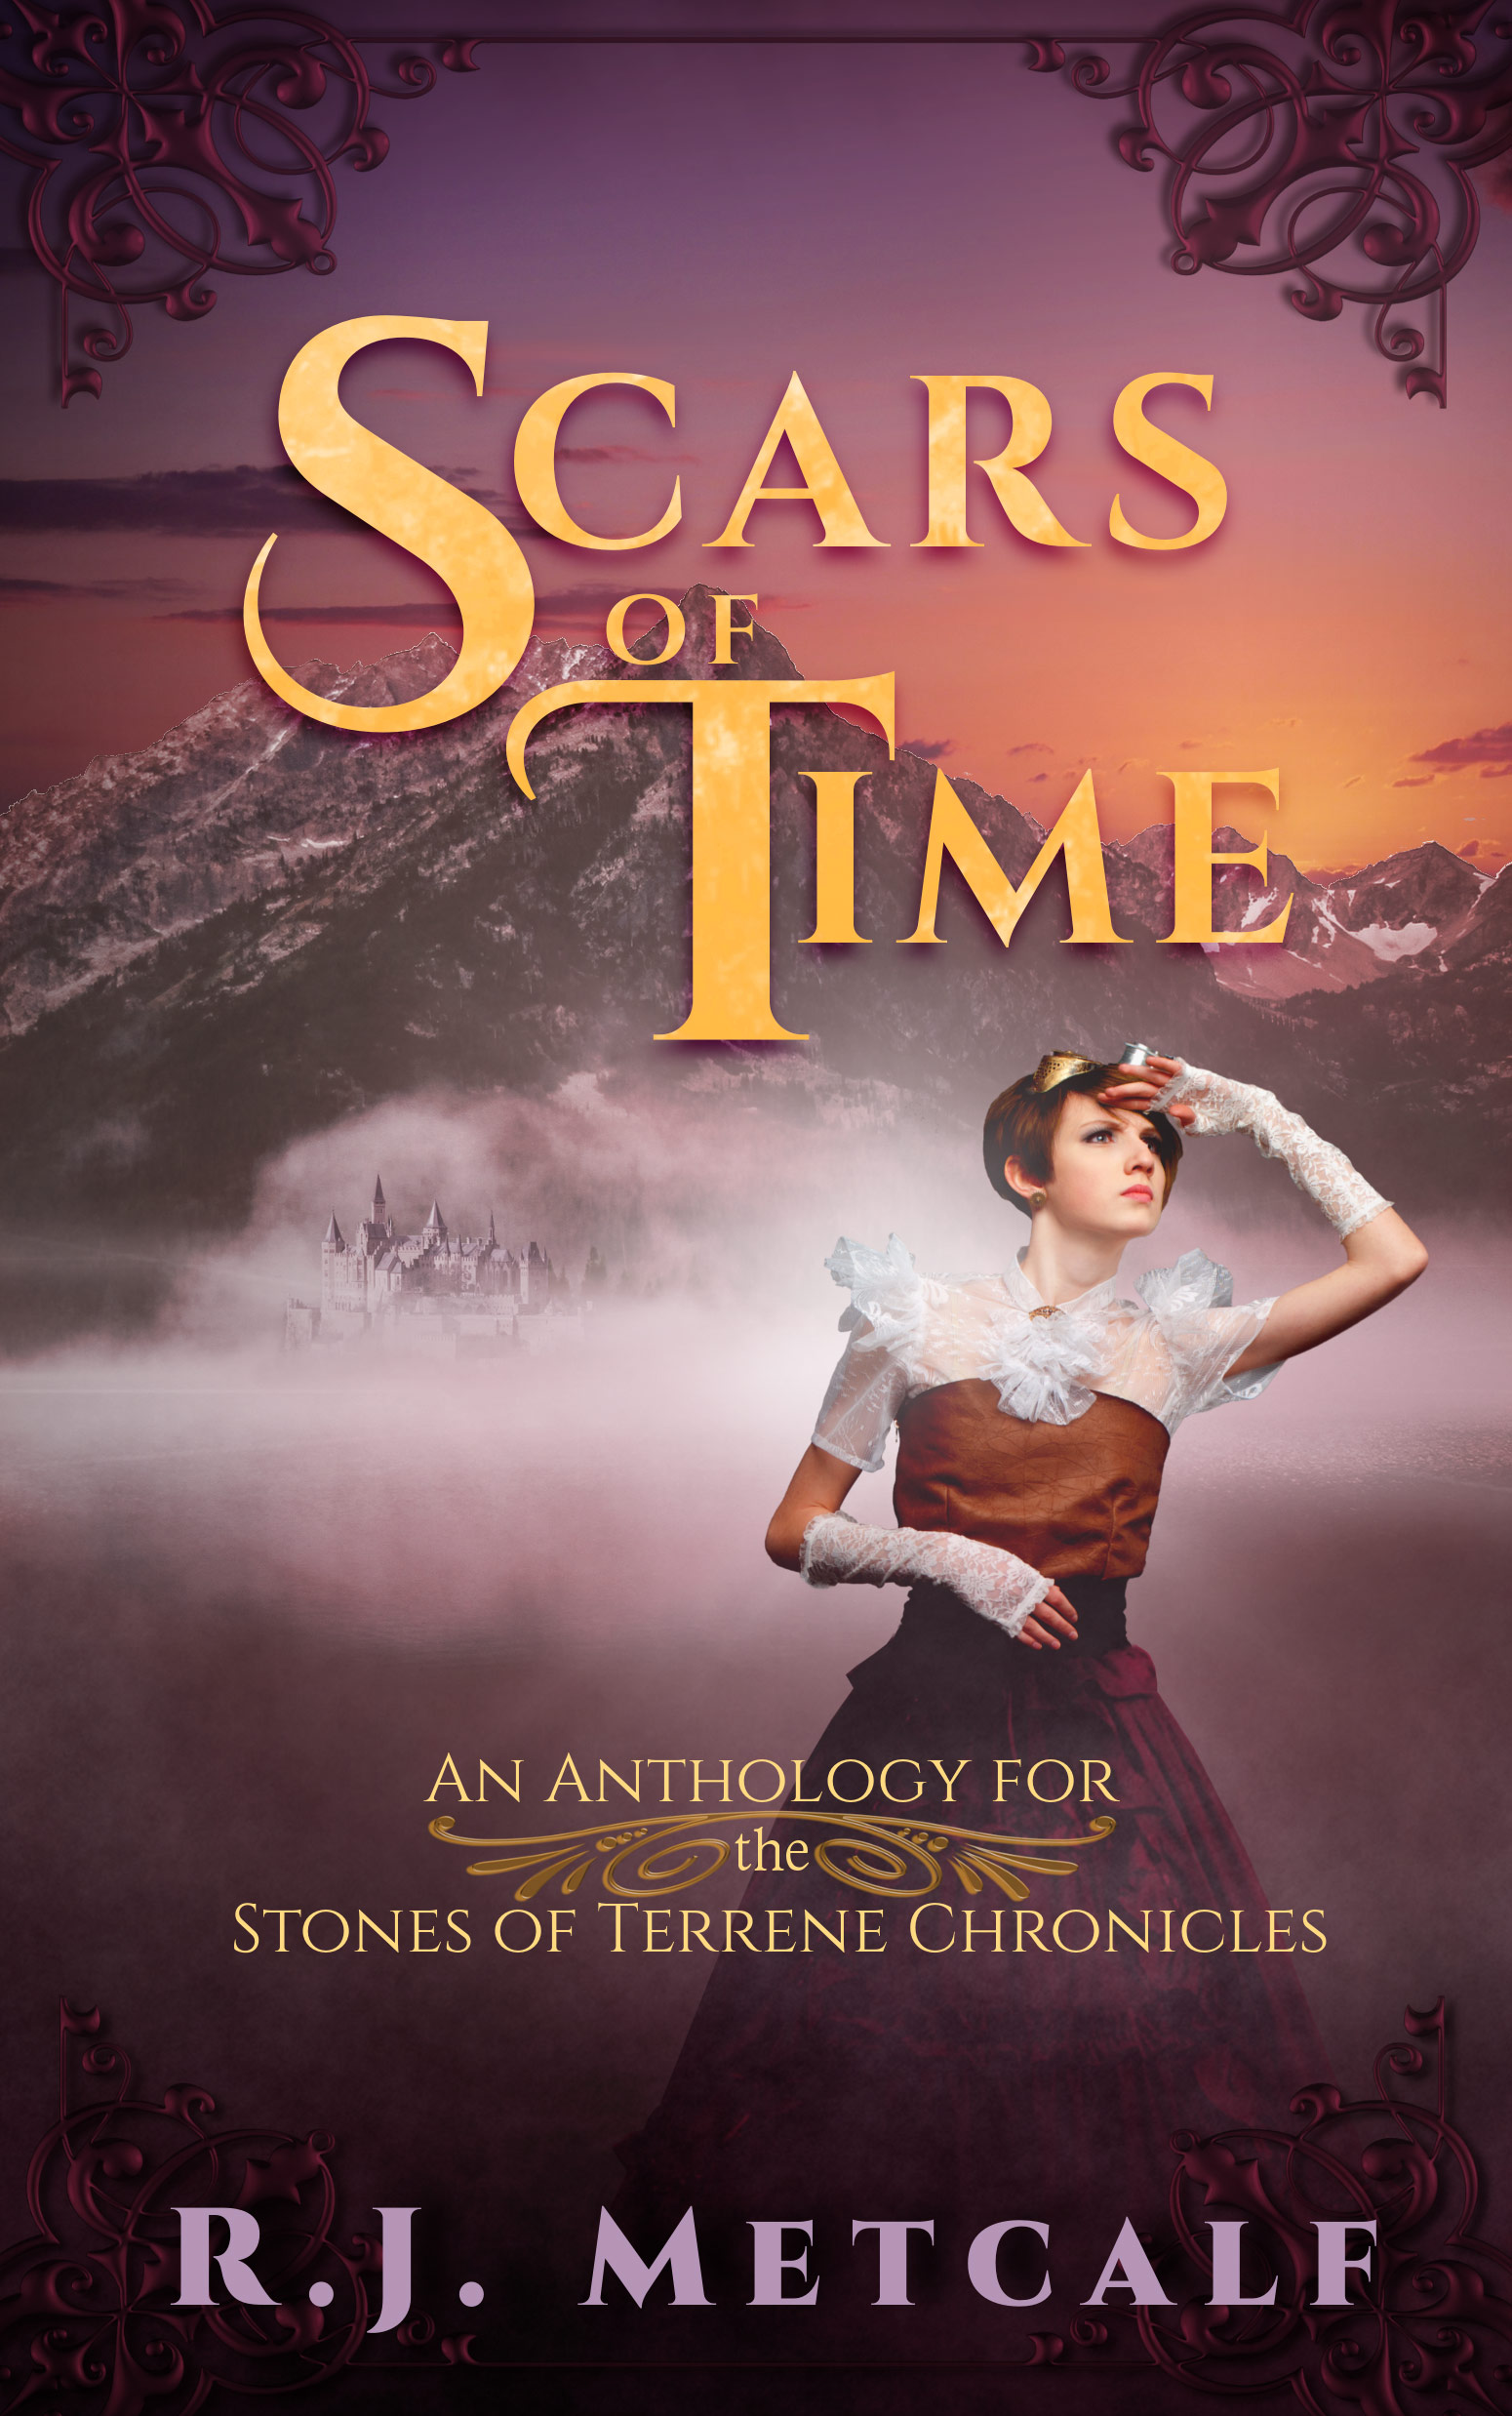 Scars of Time: An Anthology for the Stones of Terrene Chronicles